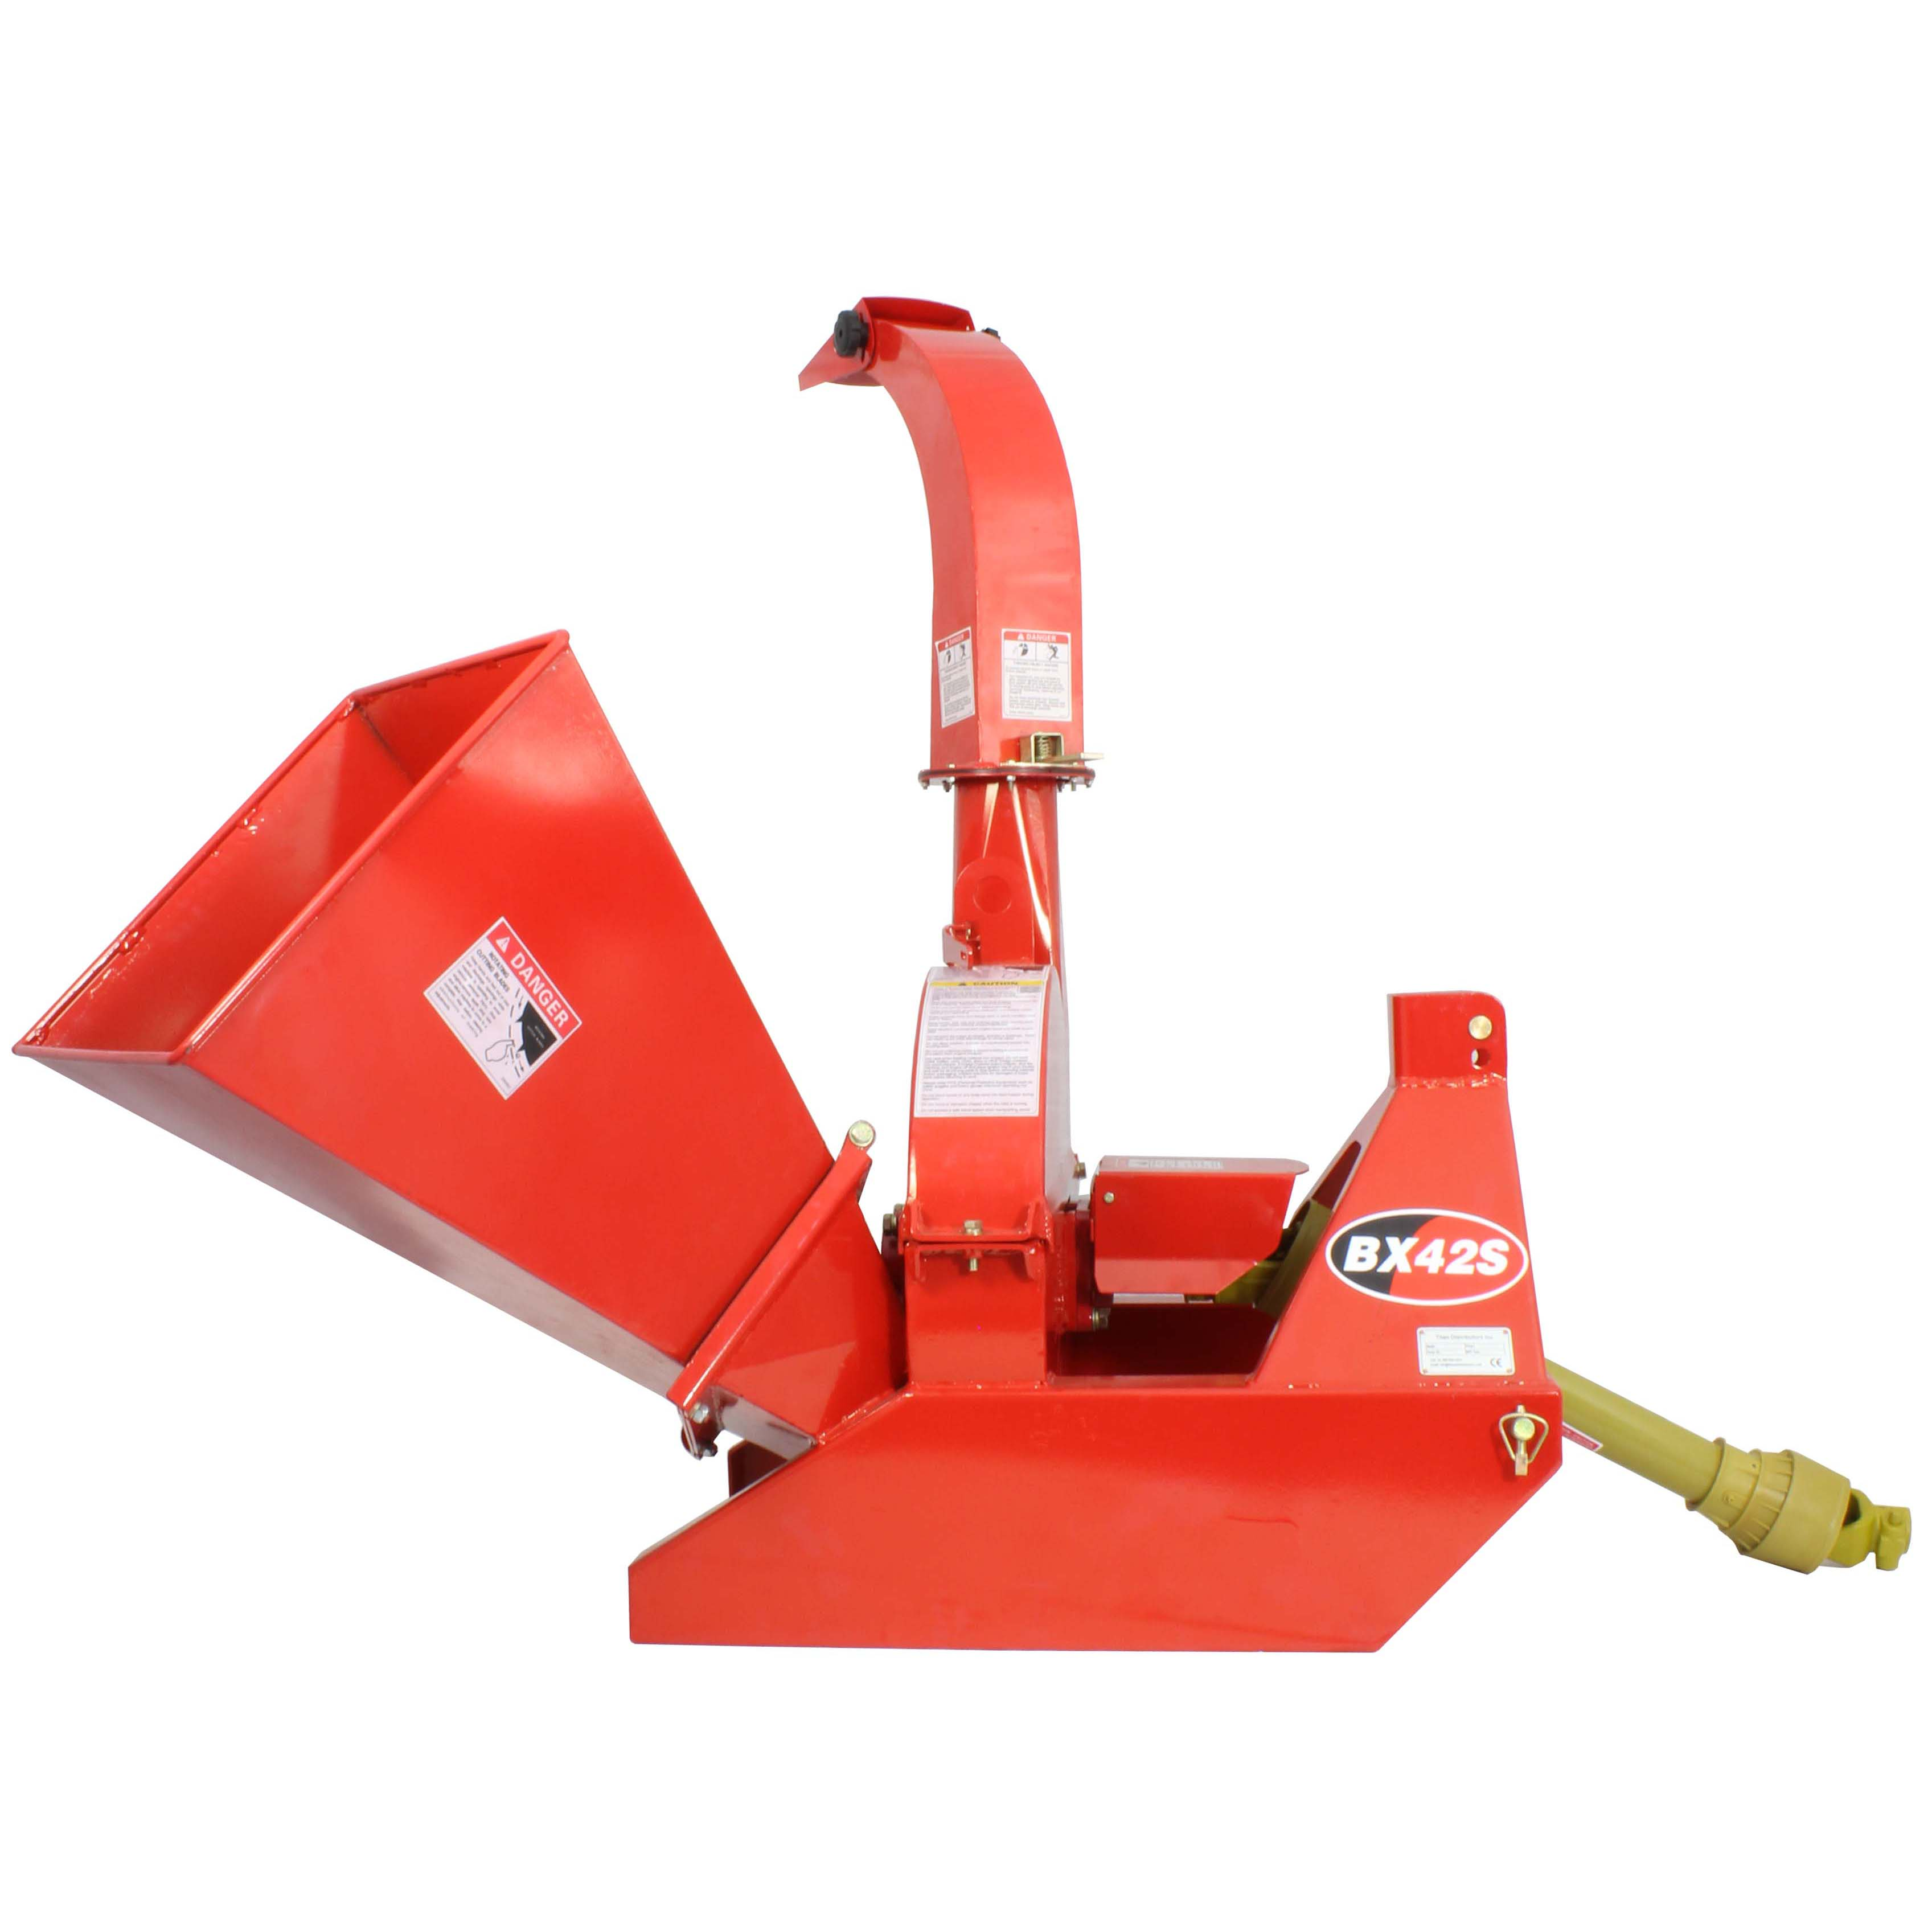 3 Point Attachment Wood Chipper For Tractors Up To 40HP, Titan BX42 PTO 4x10